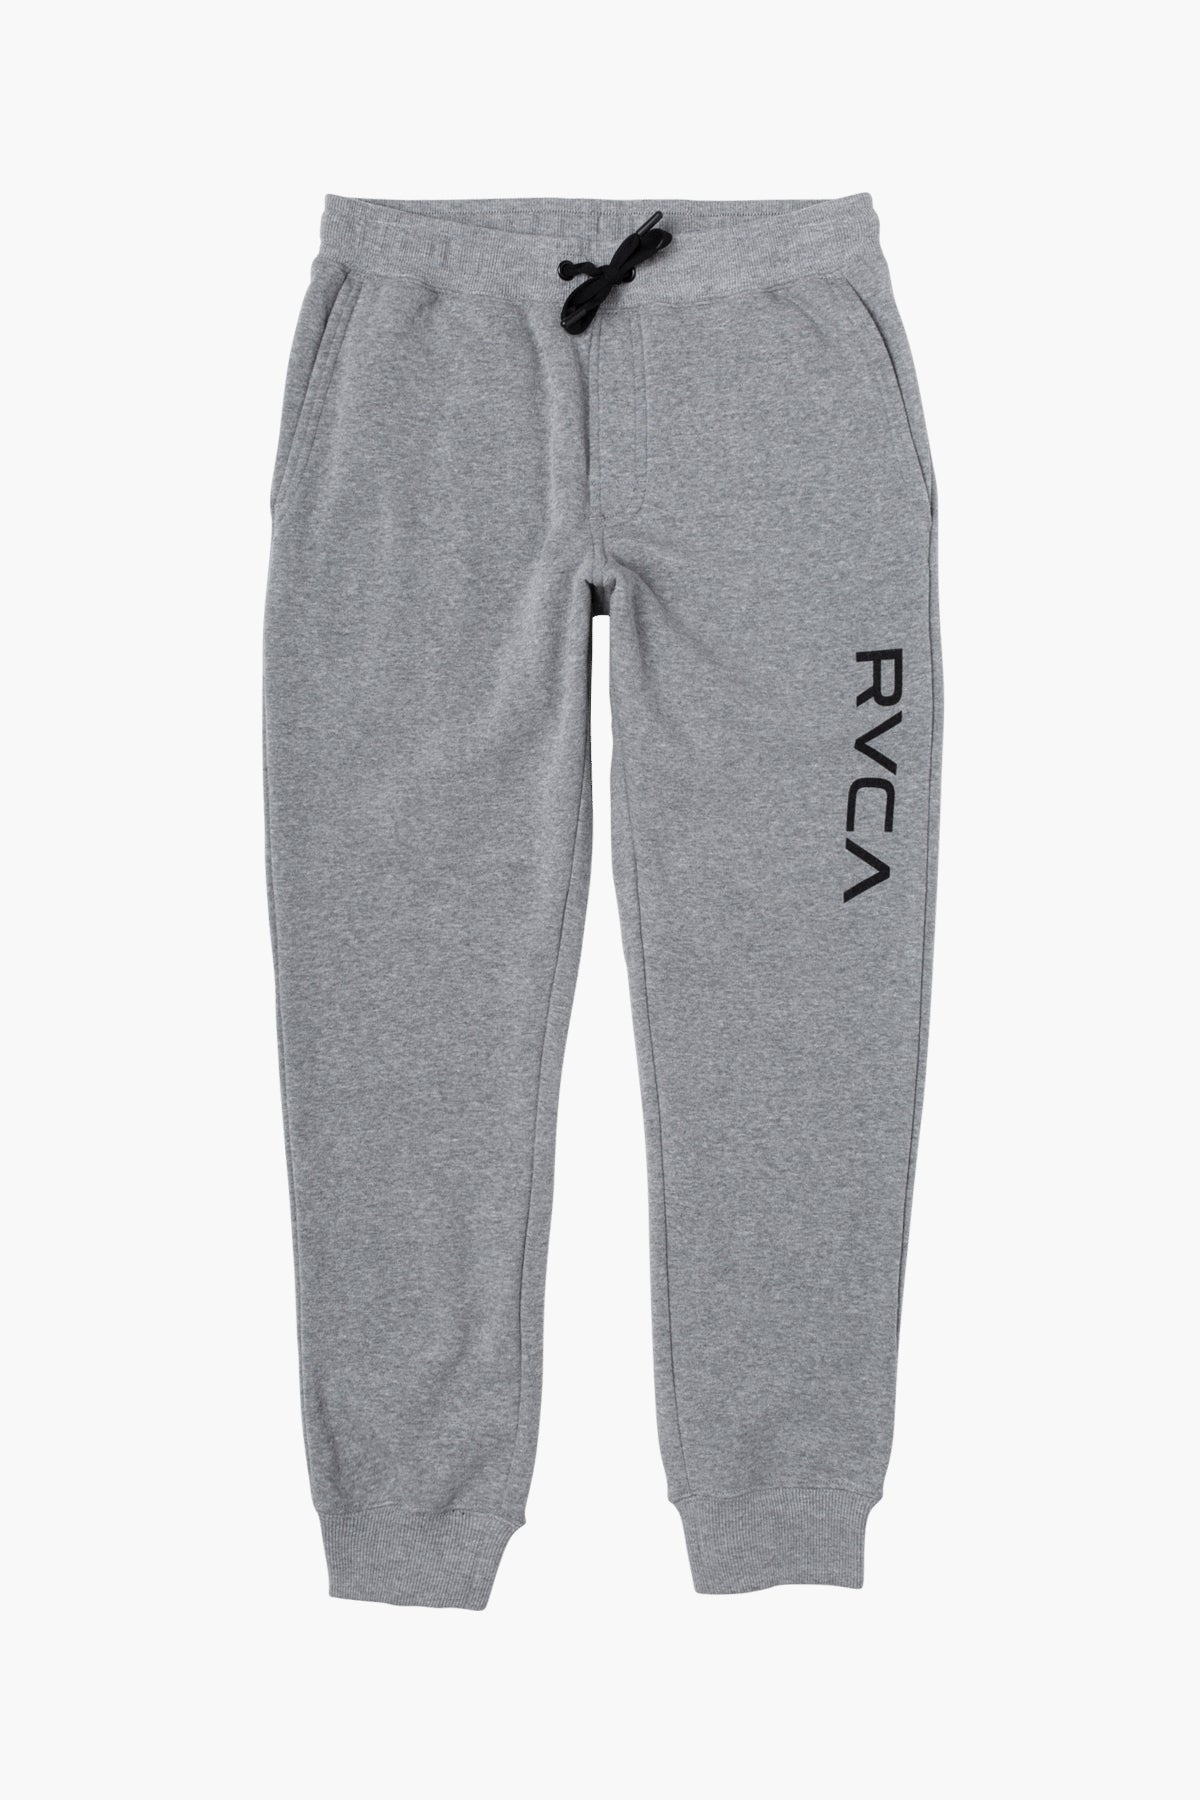 RVCA Ripper Boys Sweatpants - Grey